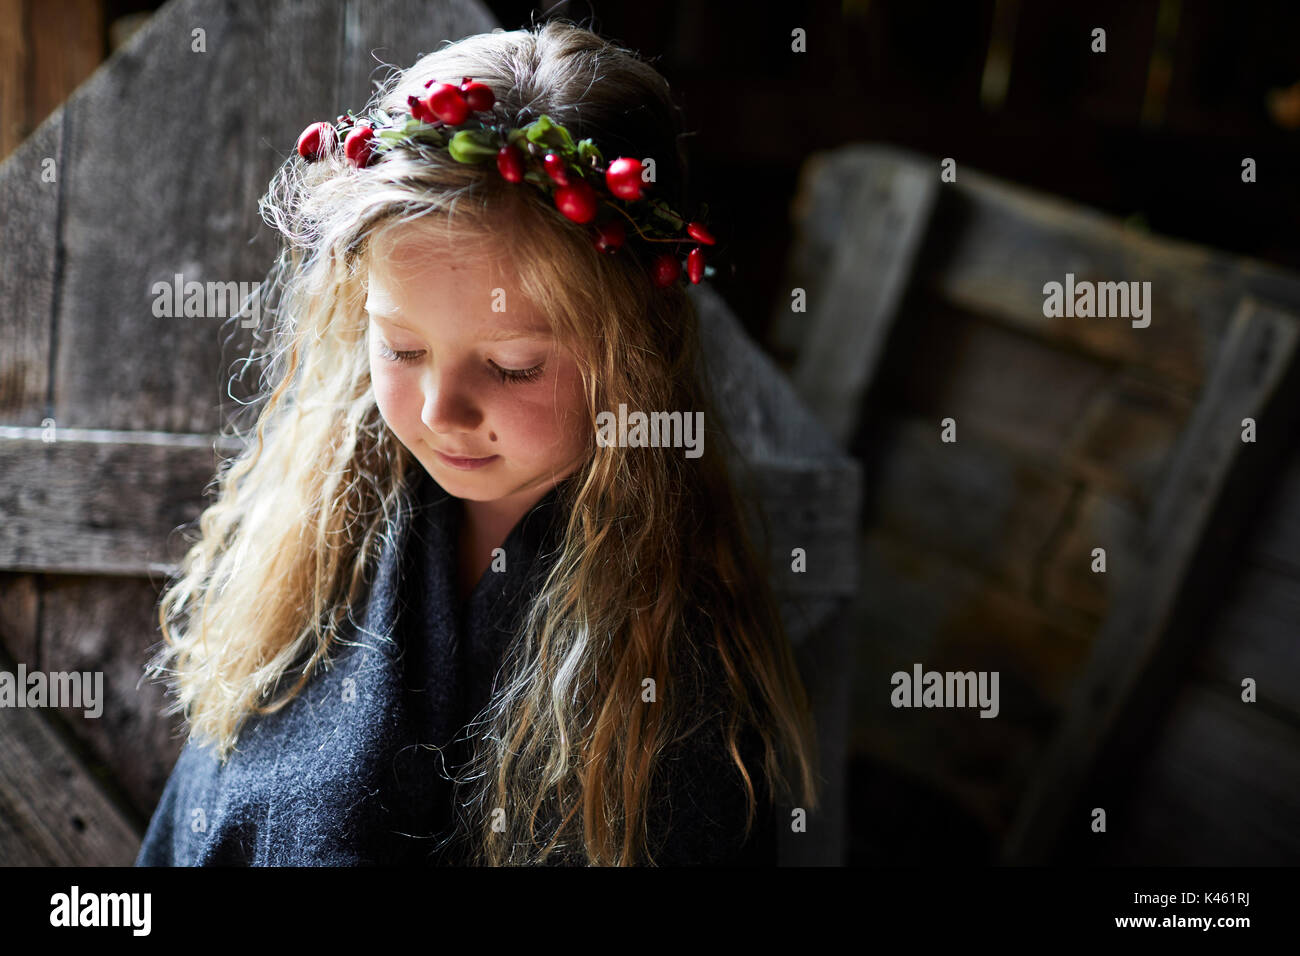 Blond long-haired girl, headdress, garland with rose hips, portrait, - Stock Image